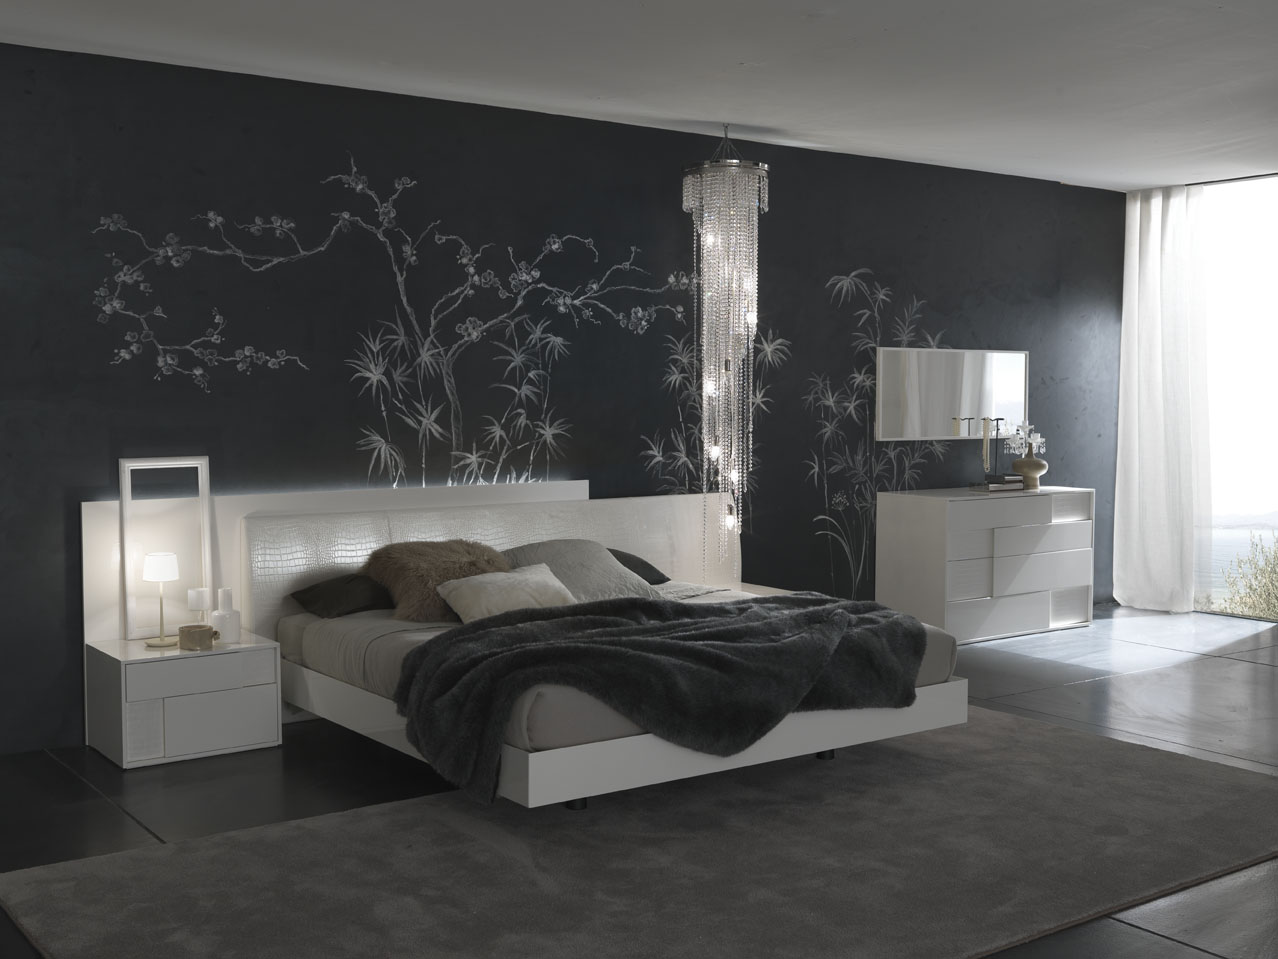 Bedroom decorating ideas from evinco - Wall painting ideas for bedroom ...